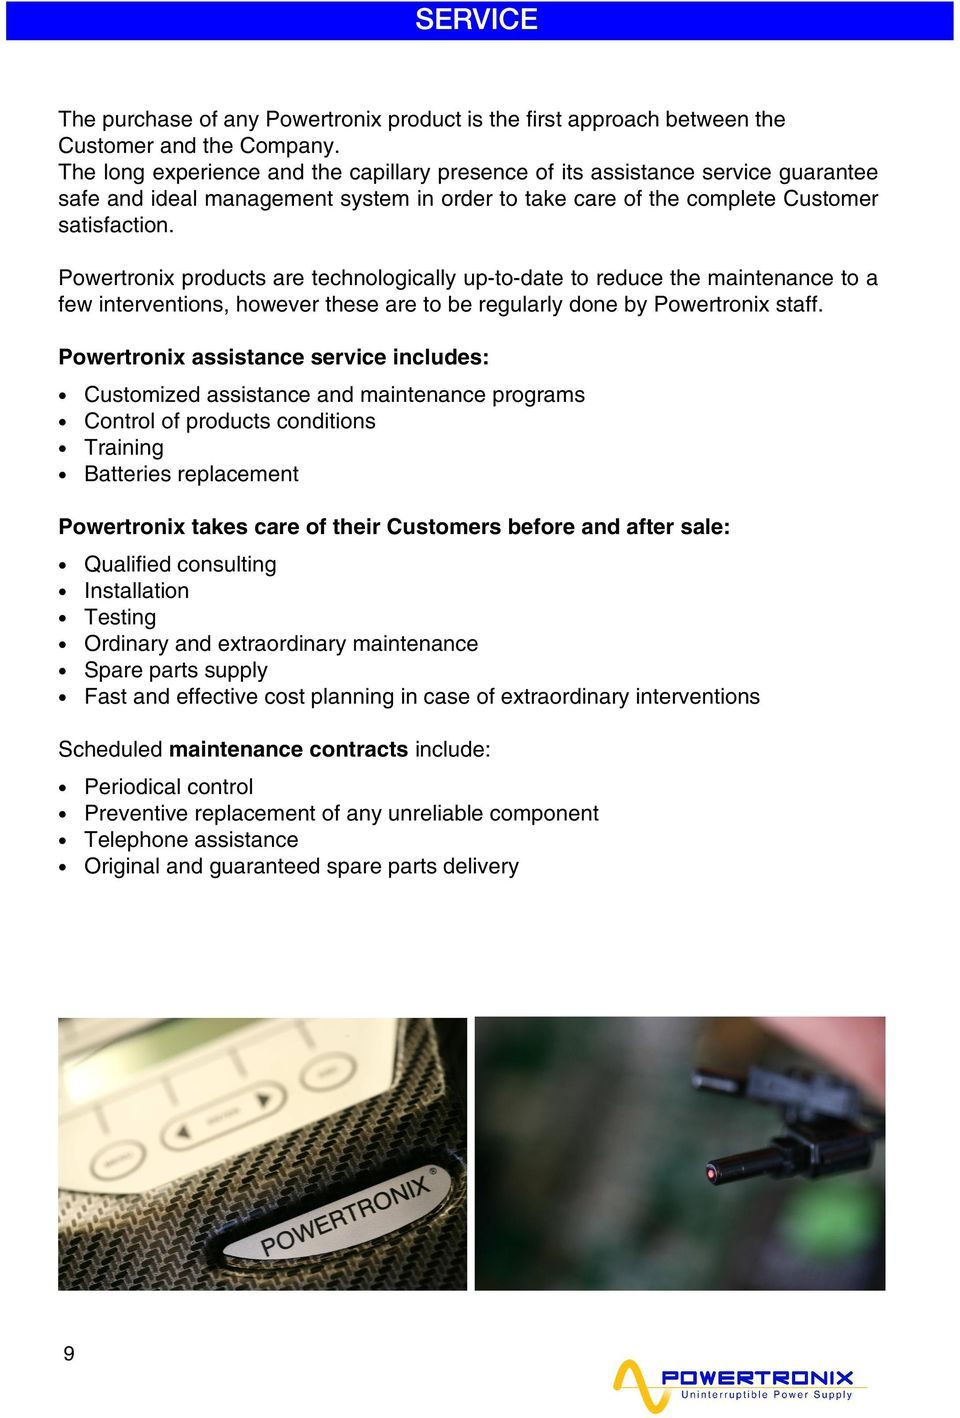 Powertronix products are technologically up-to-date to reduce the maintenance to a few interventions, however these are to be regularly done by Powertronix staff.